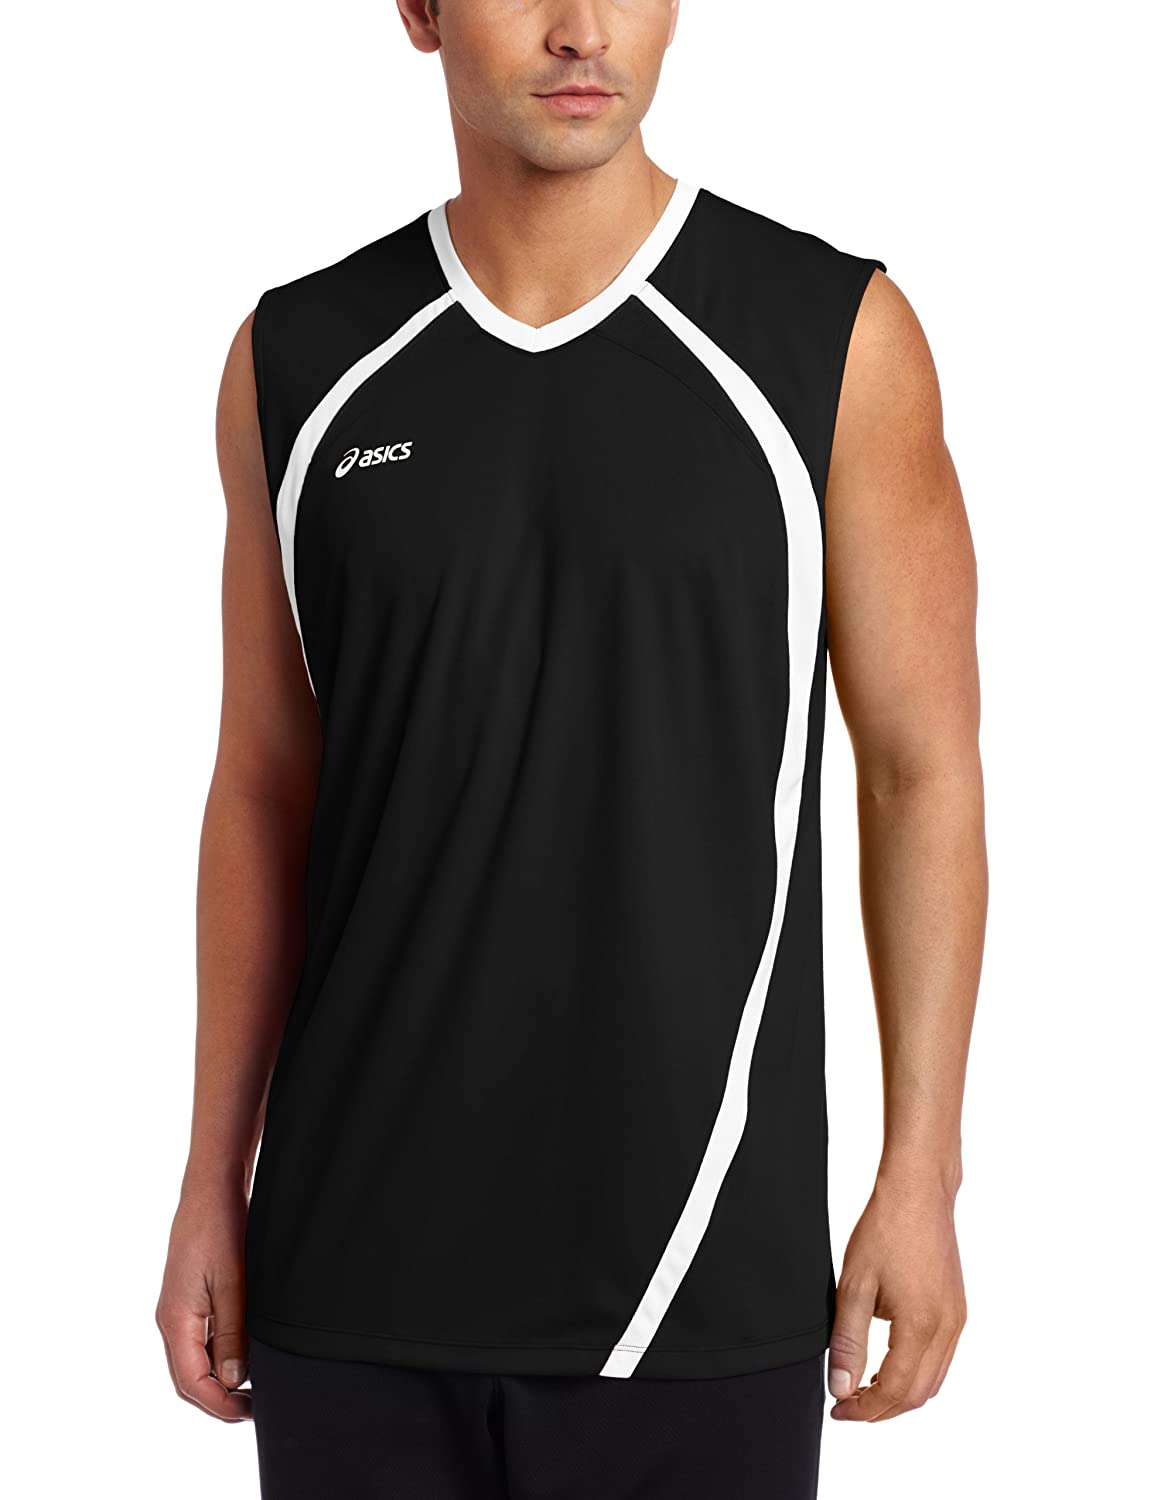 Asics Men's Tyson Sleeveless Jersey ASICS Sports Apparel